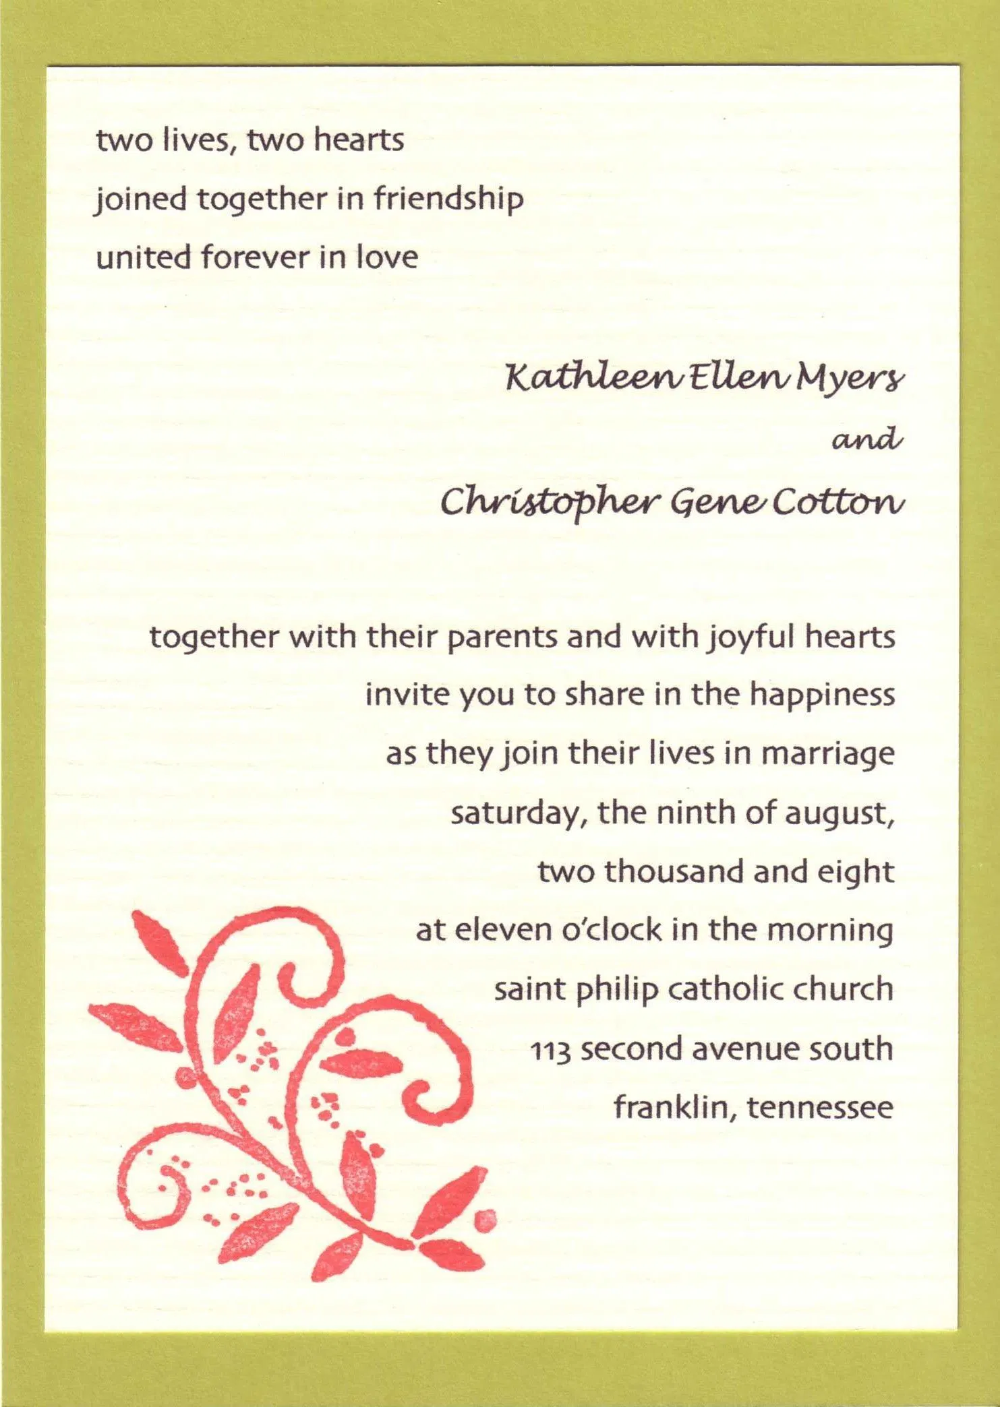 Anniversary Invitation Wedding Invitations Cards Wording Card Second Wedding Invitations Wedding Invitation Card Wording Unique Wedding Invitation Wording